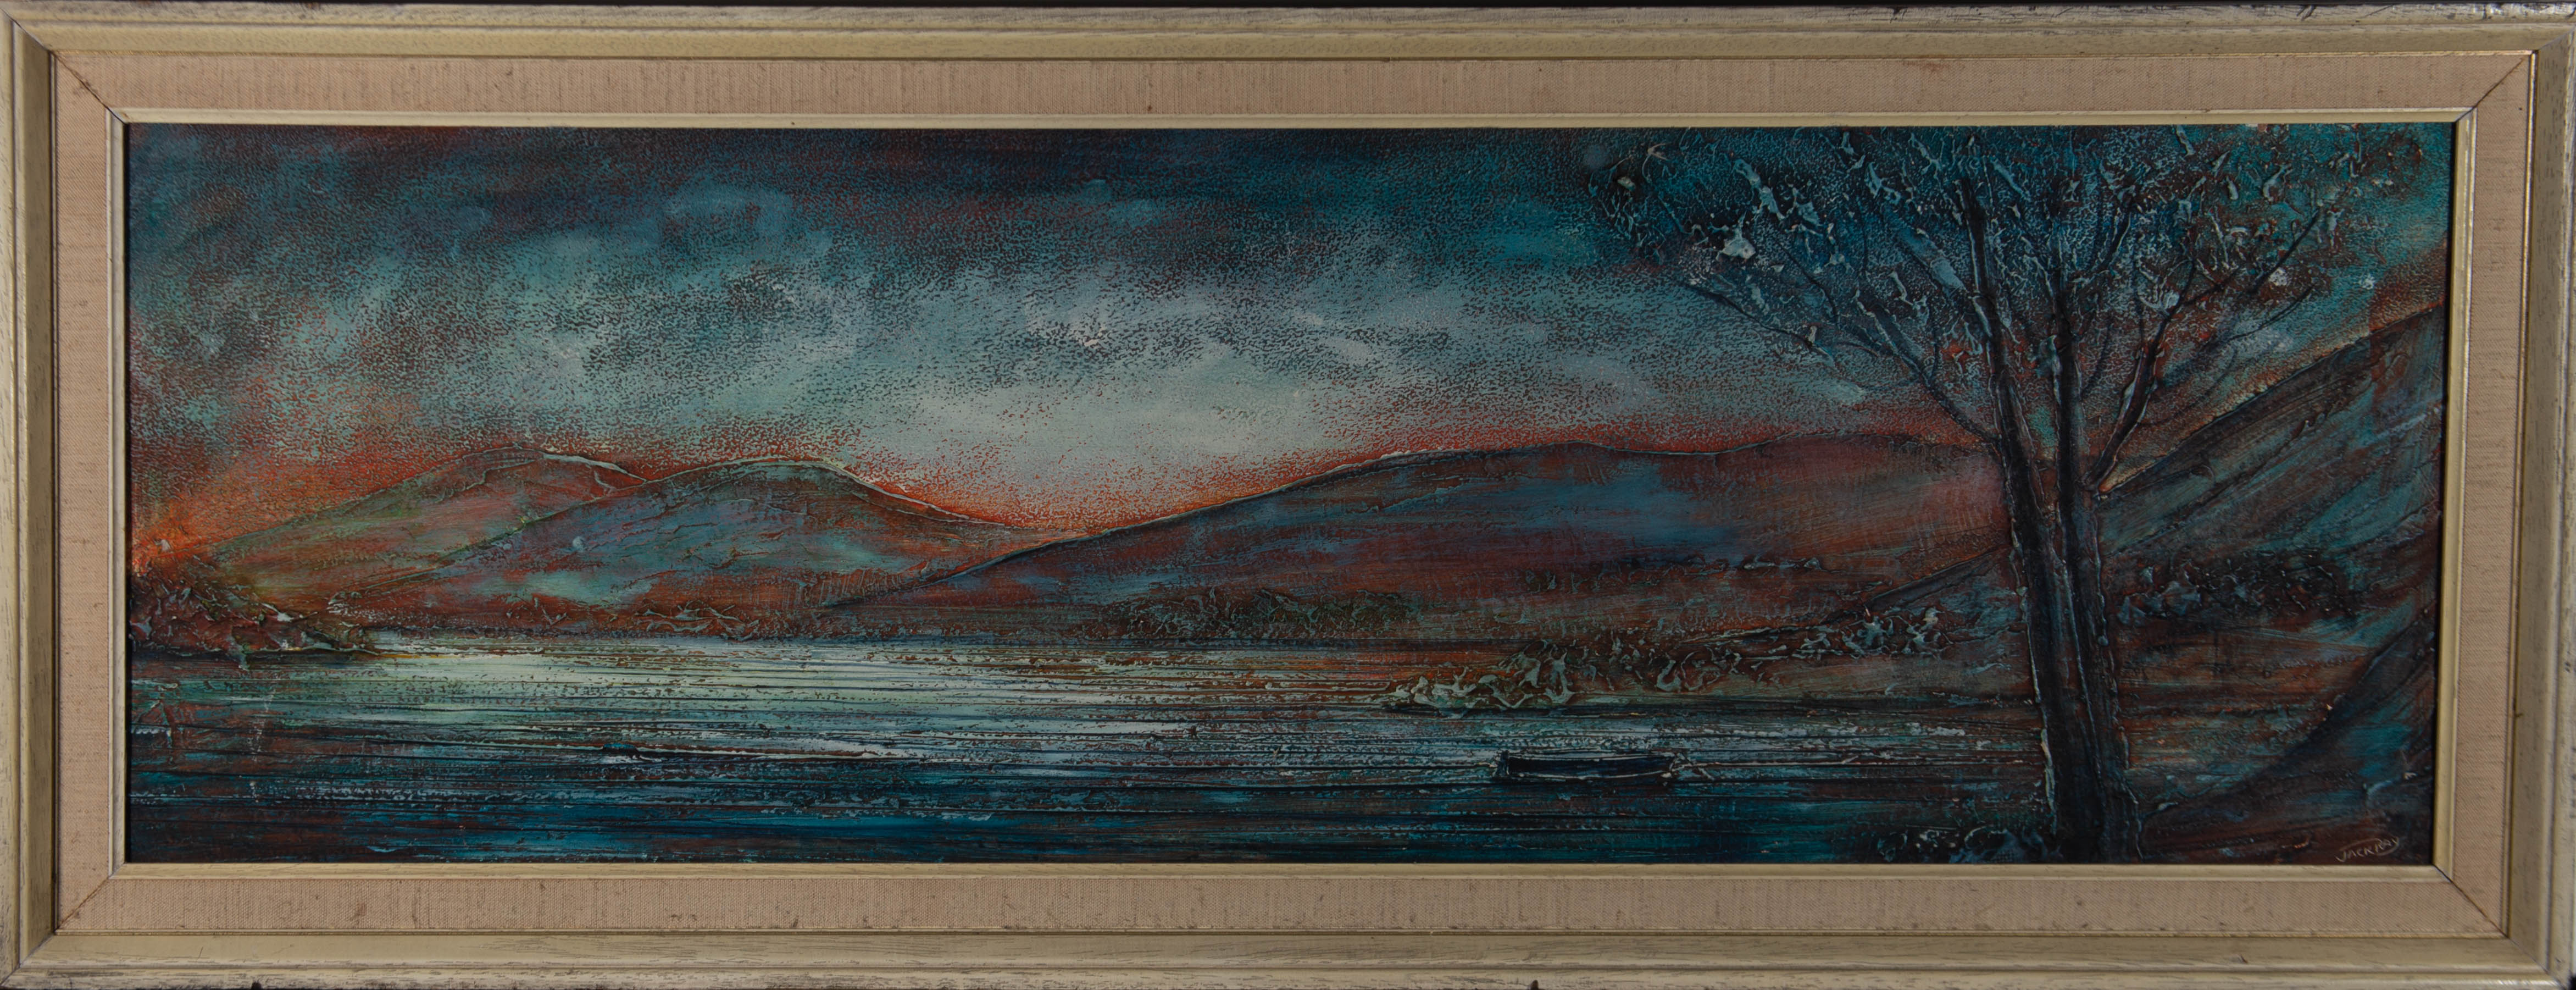 Jack Ray - 20th Century Oil, Landscape in Blue and Red